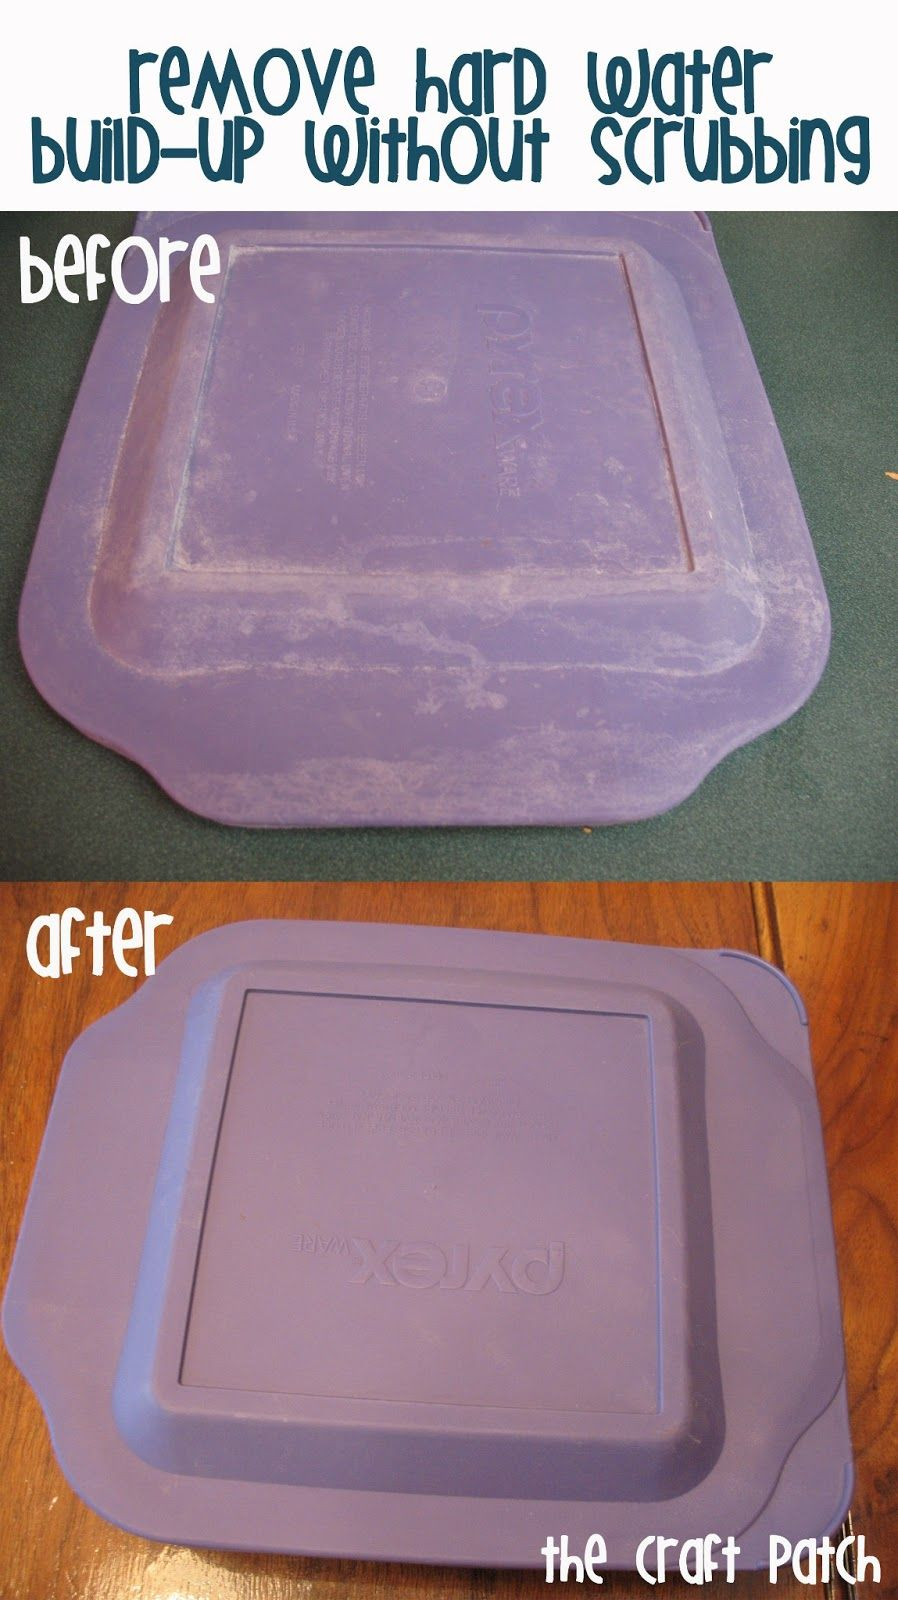 The Craft Patch: Remove Hard Water Build-Up From Dishes Without ...